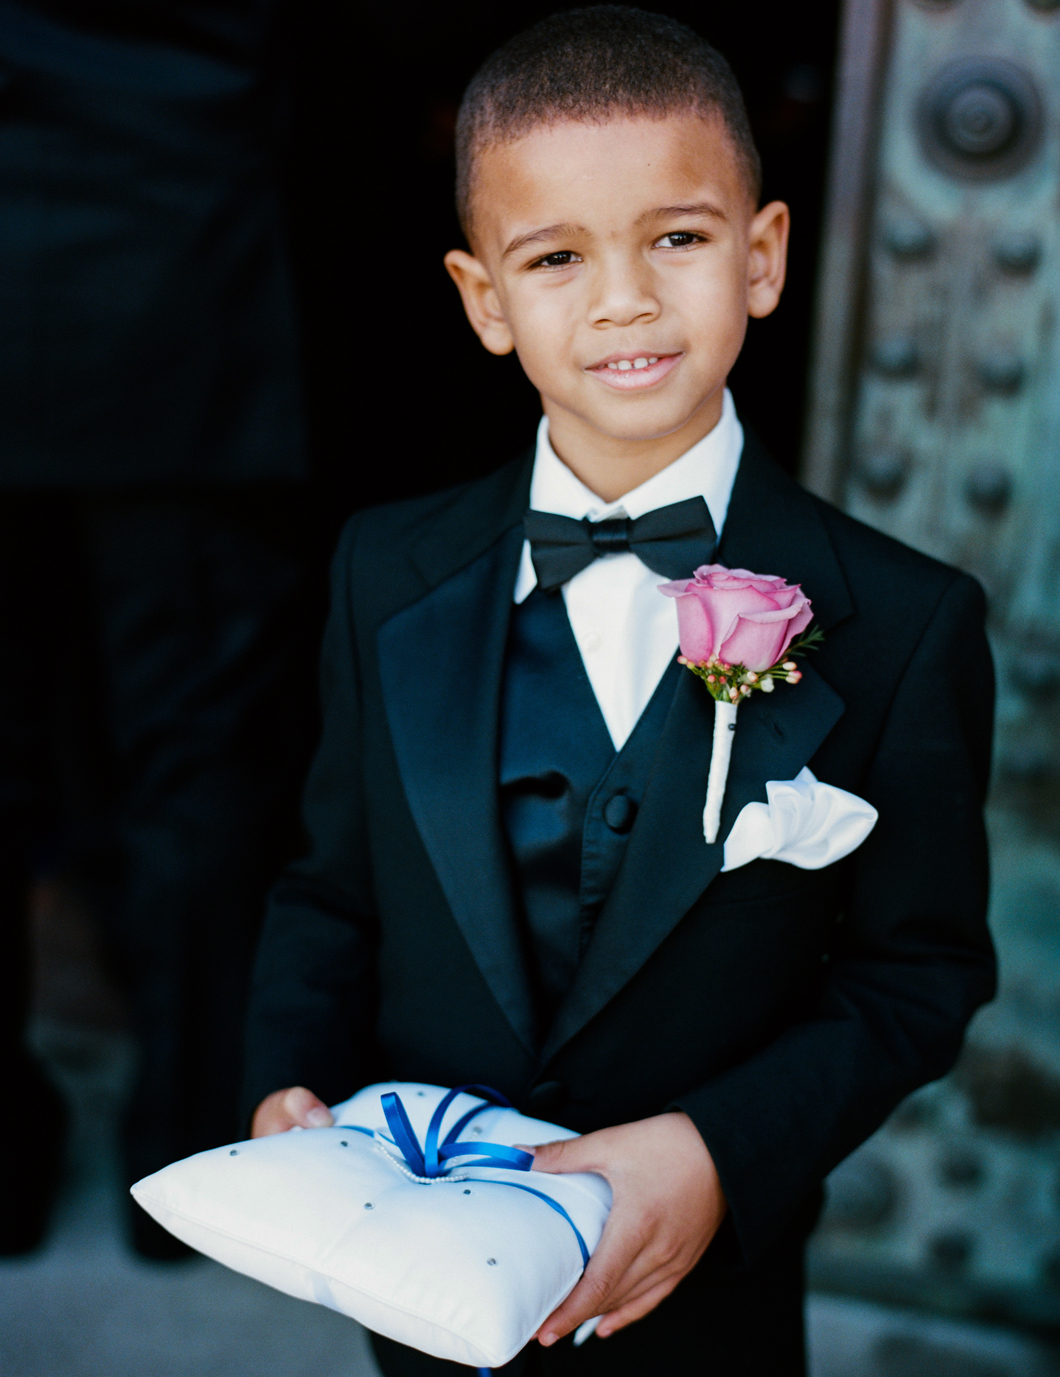 ring bearer tuxedo with rose